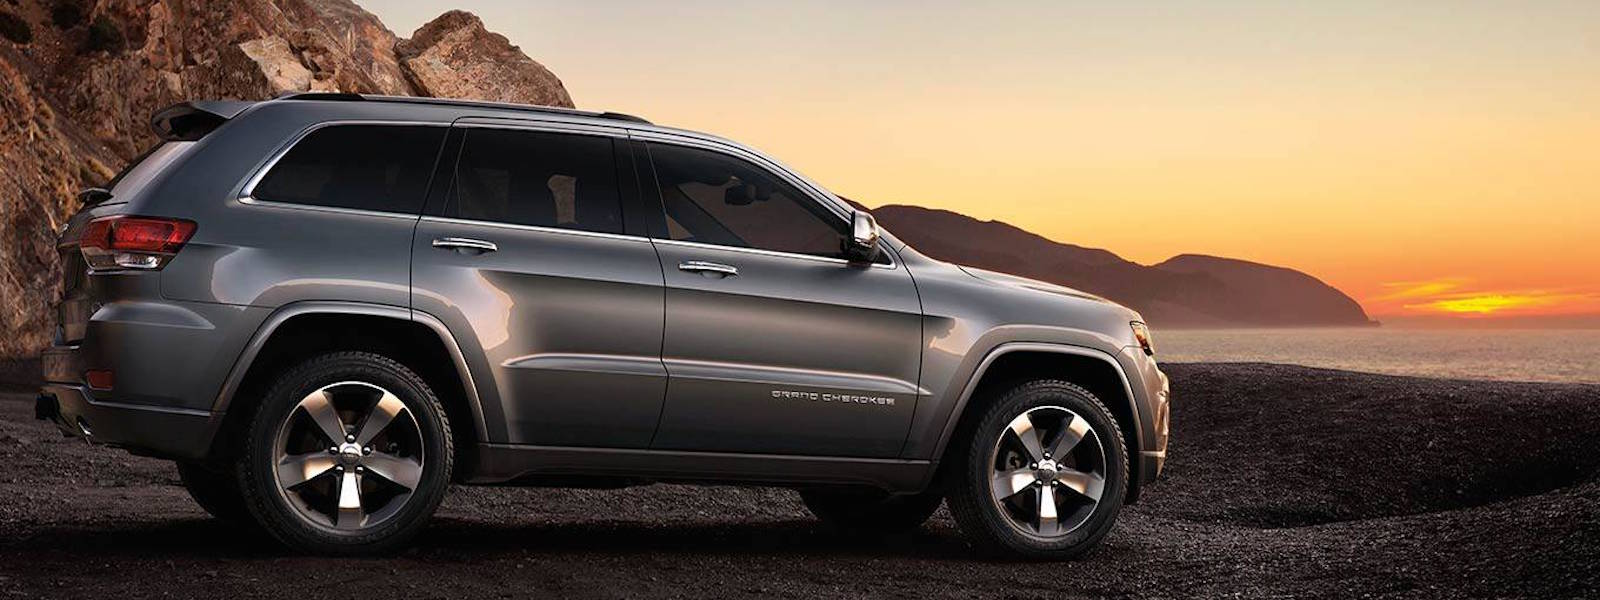 2016 Jeep Grand Cherokee parked in the sunset on a mountainside – Colorado Springs, CO